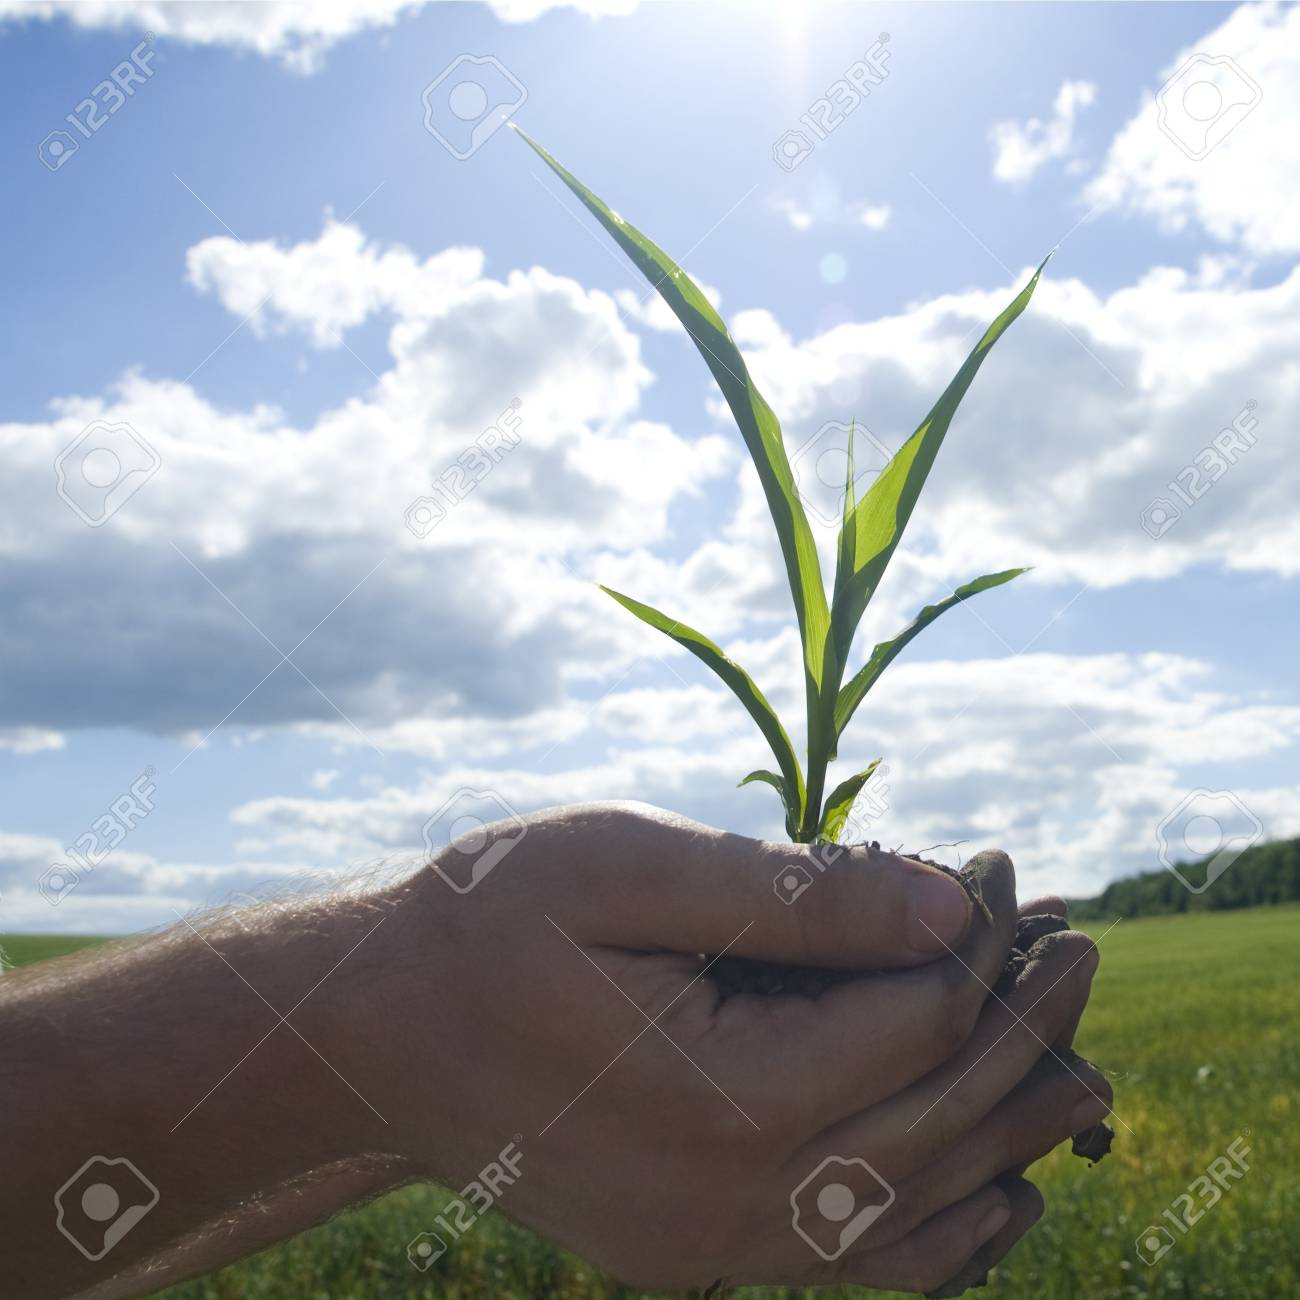 Young green plant in palms of hands Stock Photo - 18363185